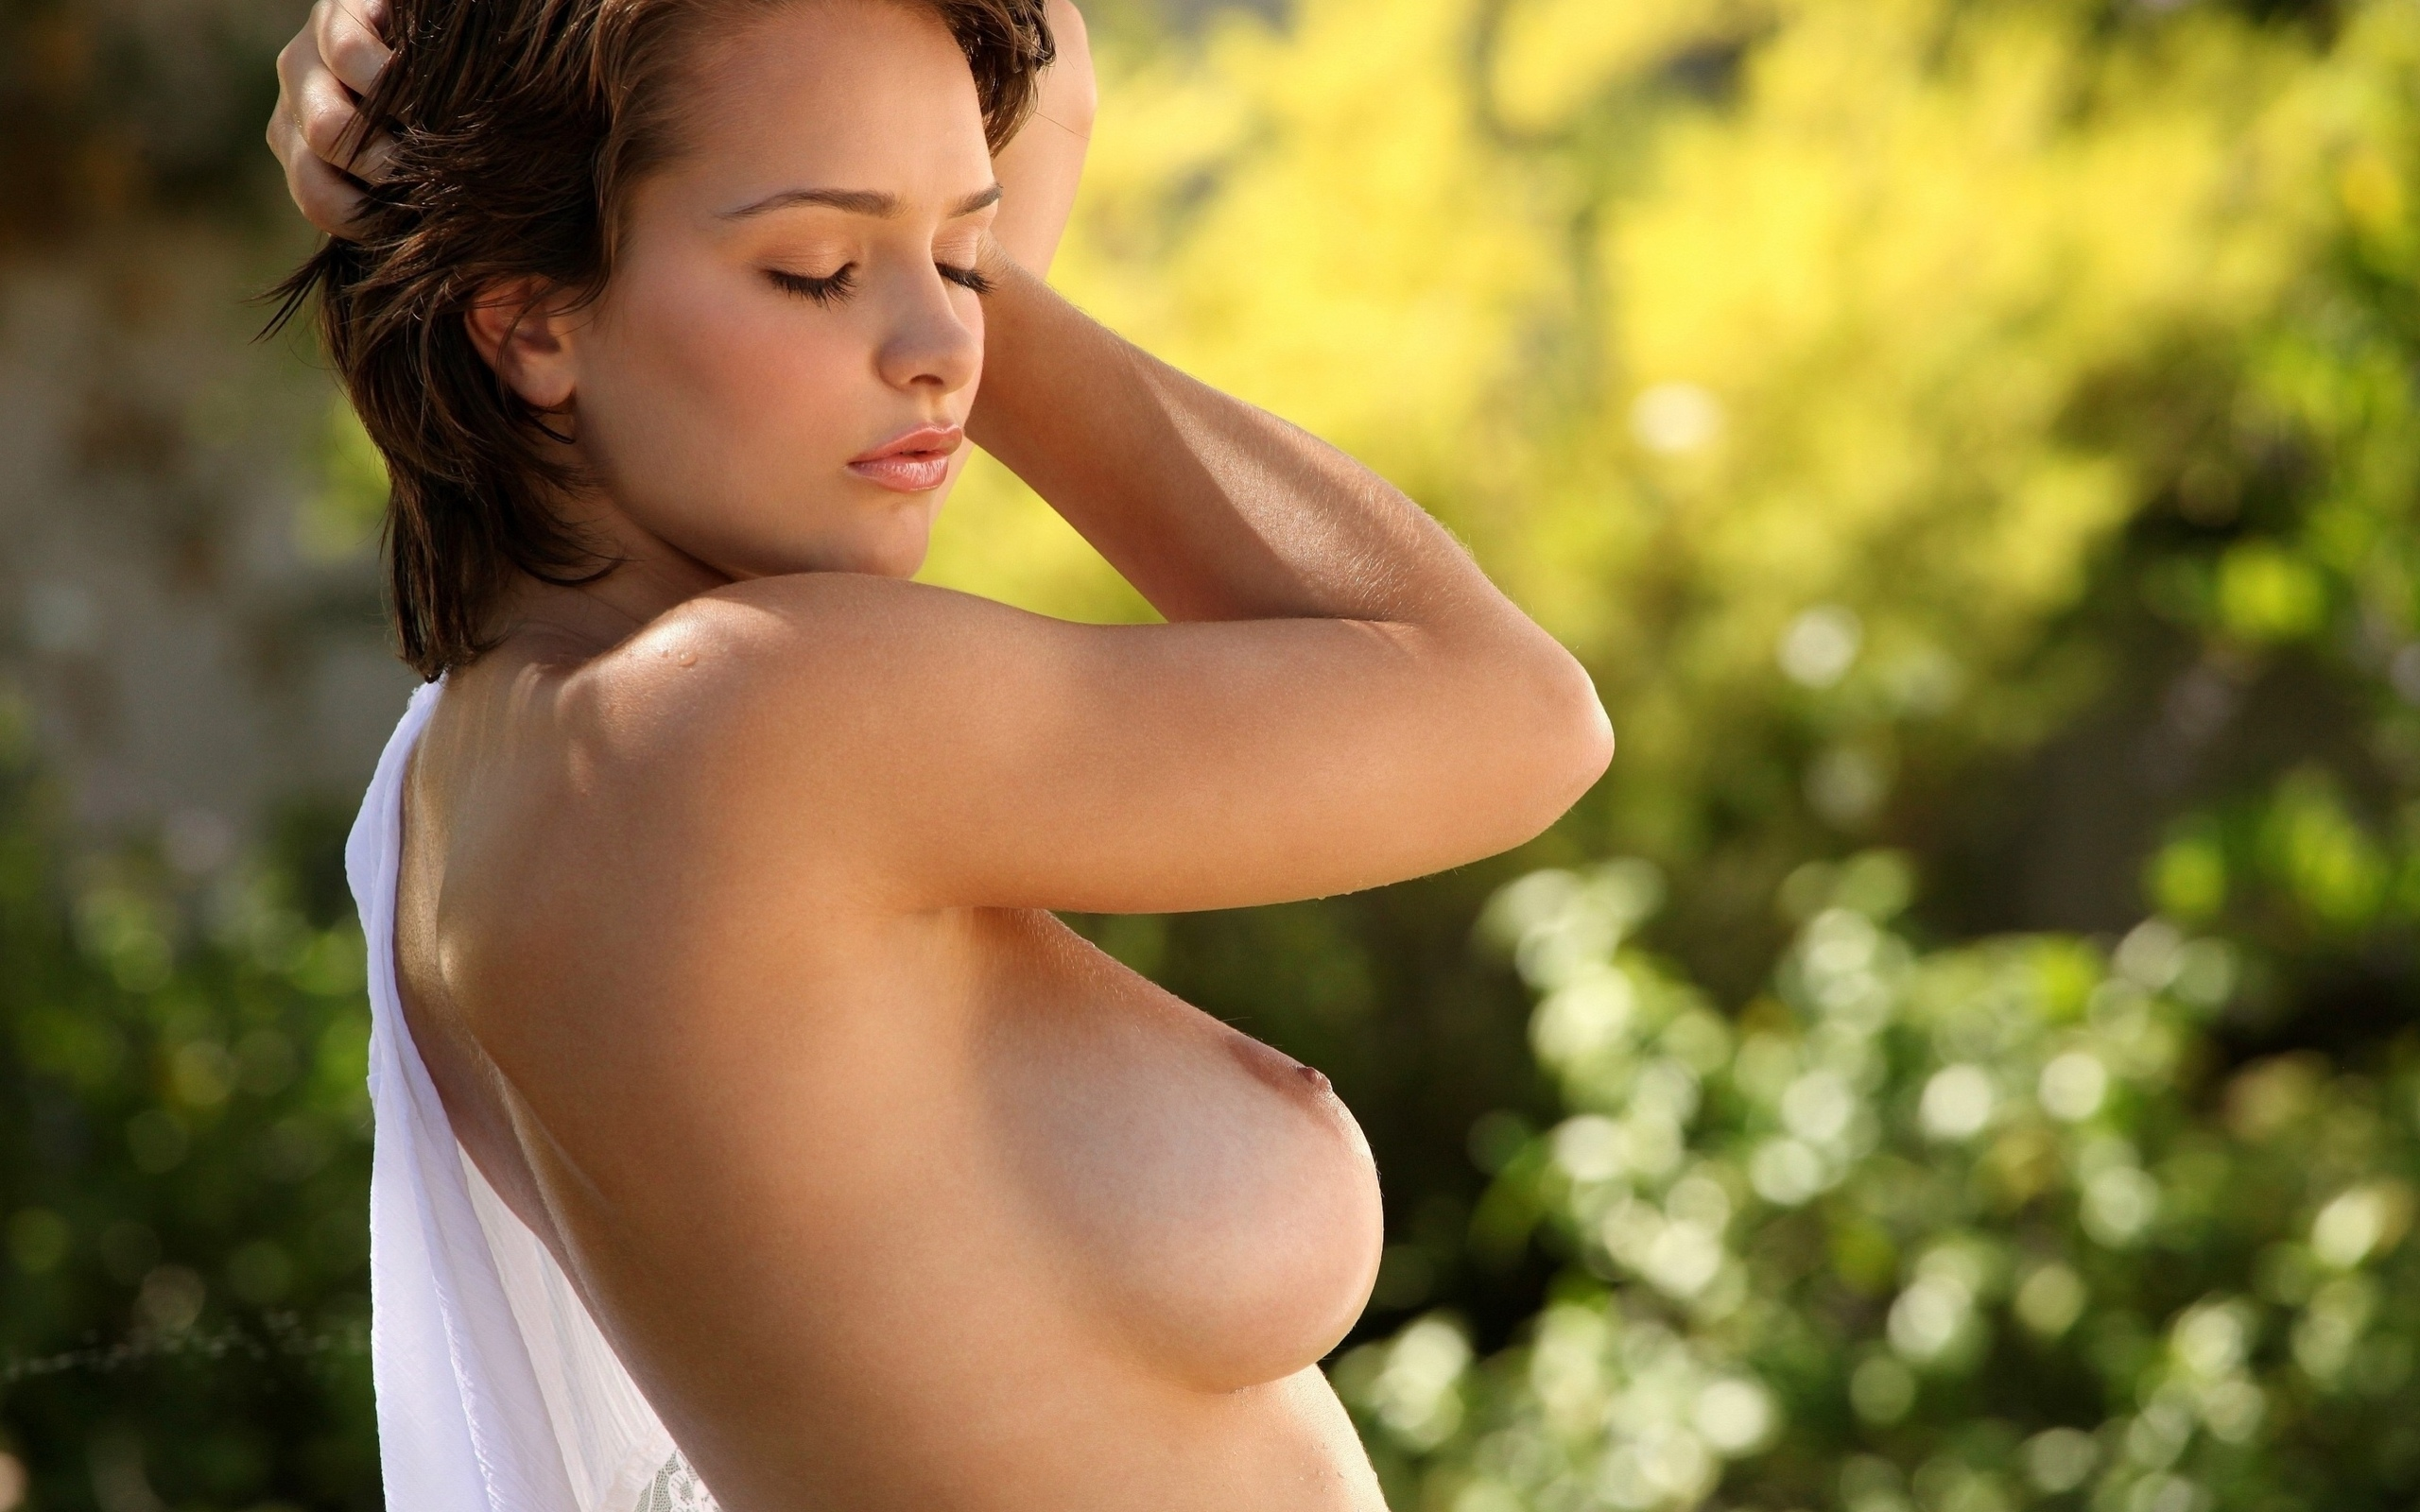 Girls chest sexarab, leah remini tits images